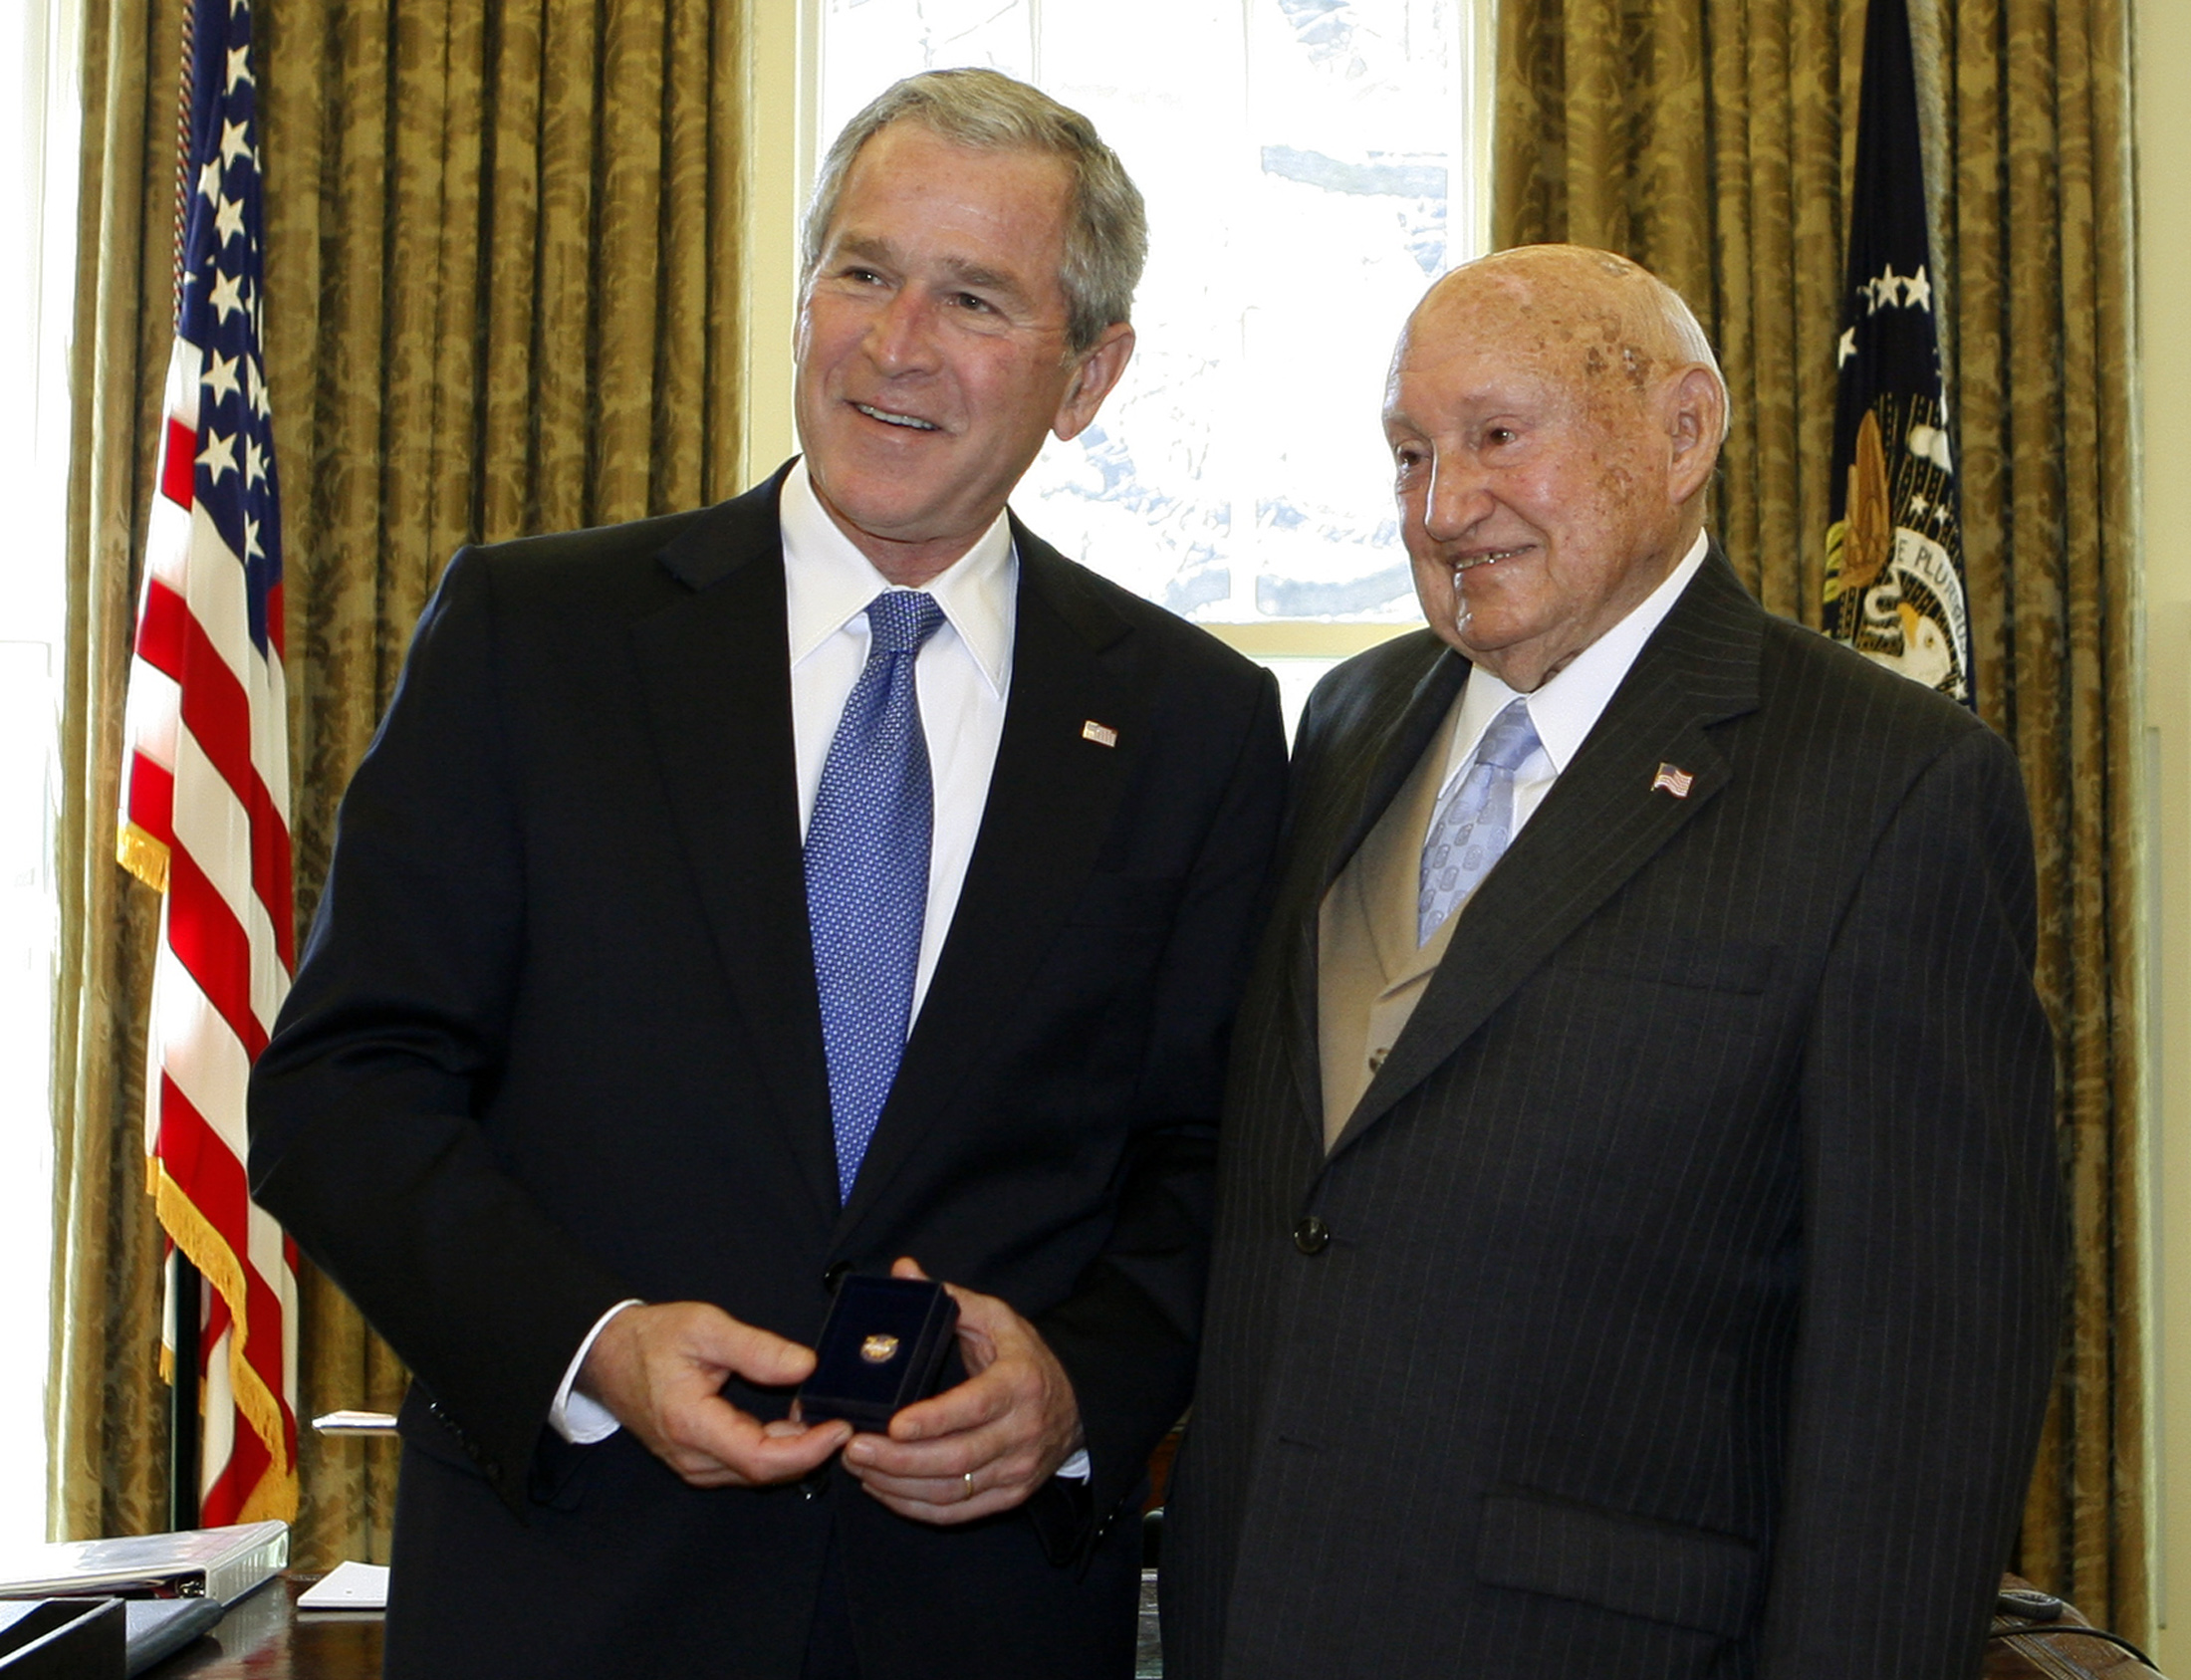 U.S. President George W. Bush (L) presents the Lifetime President's Volunteer Service Award to Truett Cathy, founder of Chick-fil-A restaurants, in the Oval Office at the White House in Washington, April 15, 2008.   REUTERS/Jim Young     (UNITED STATES) - GM1E44G00V201